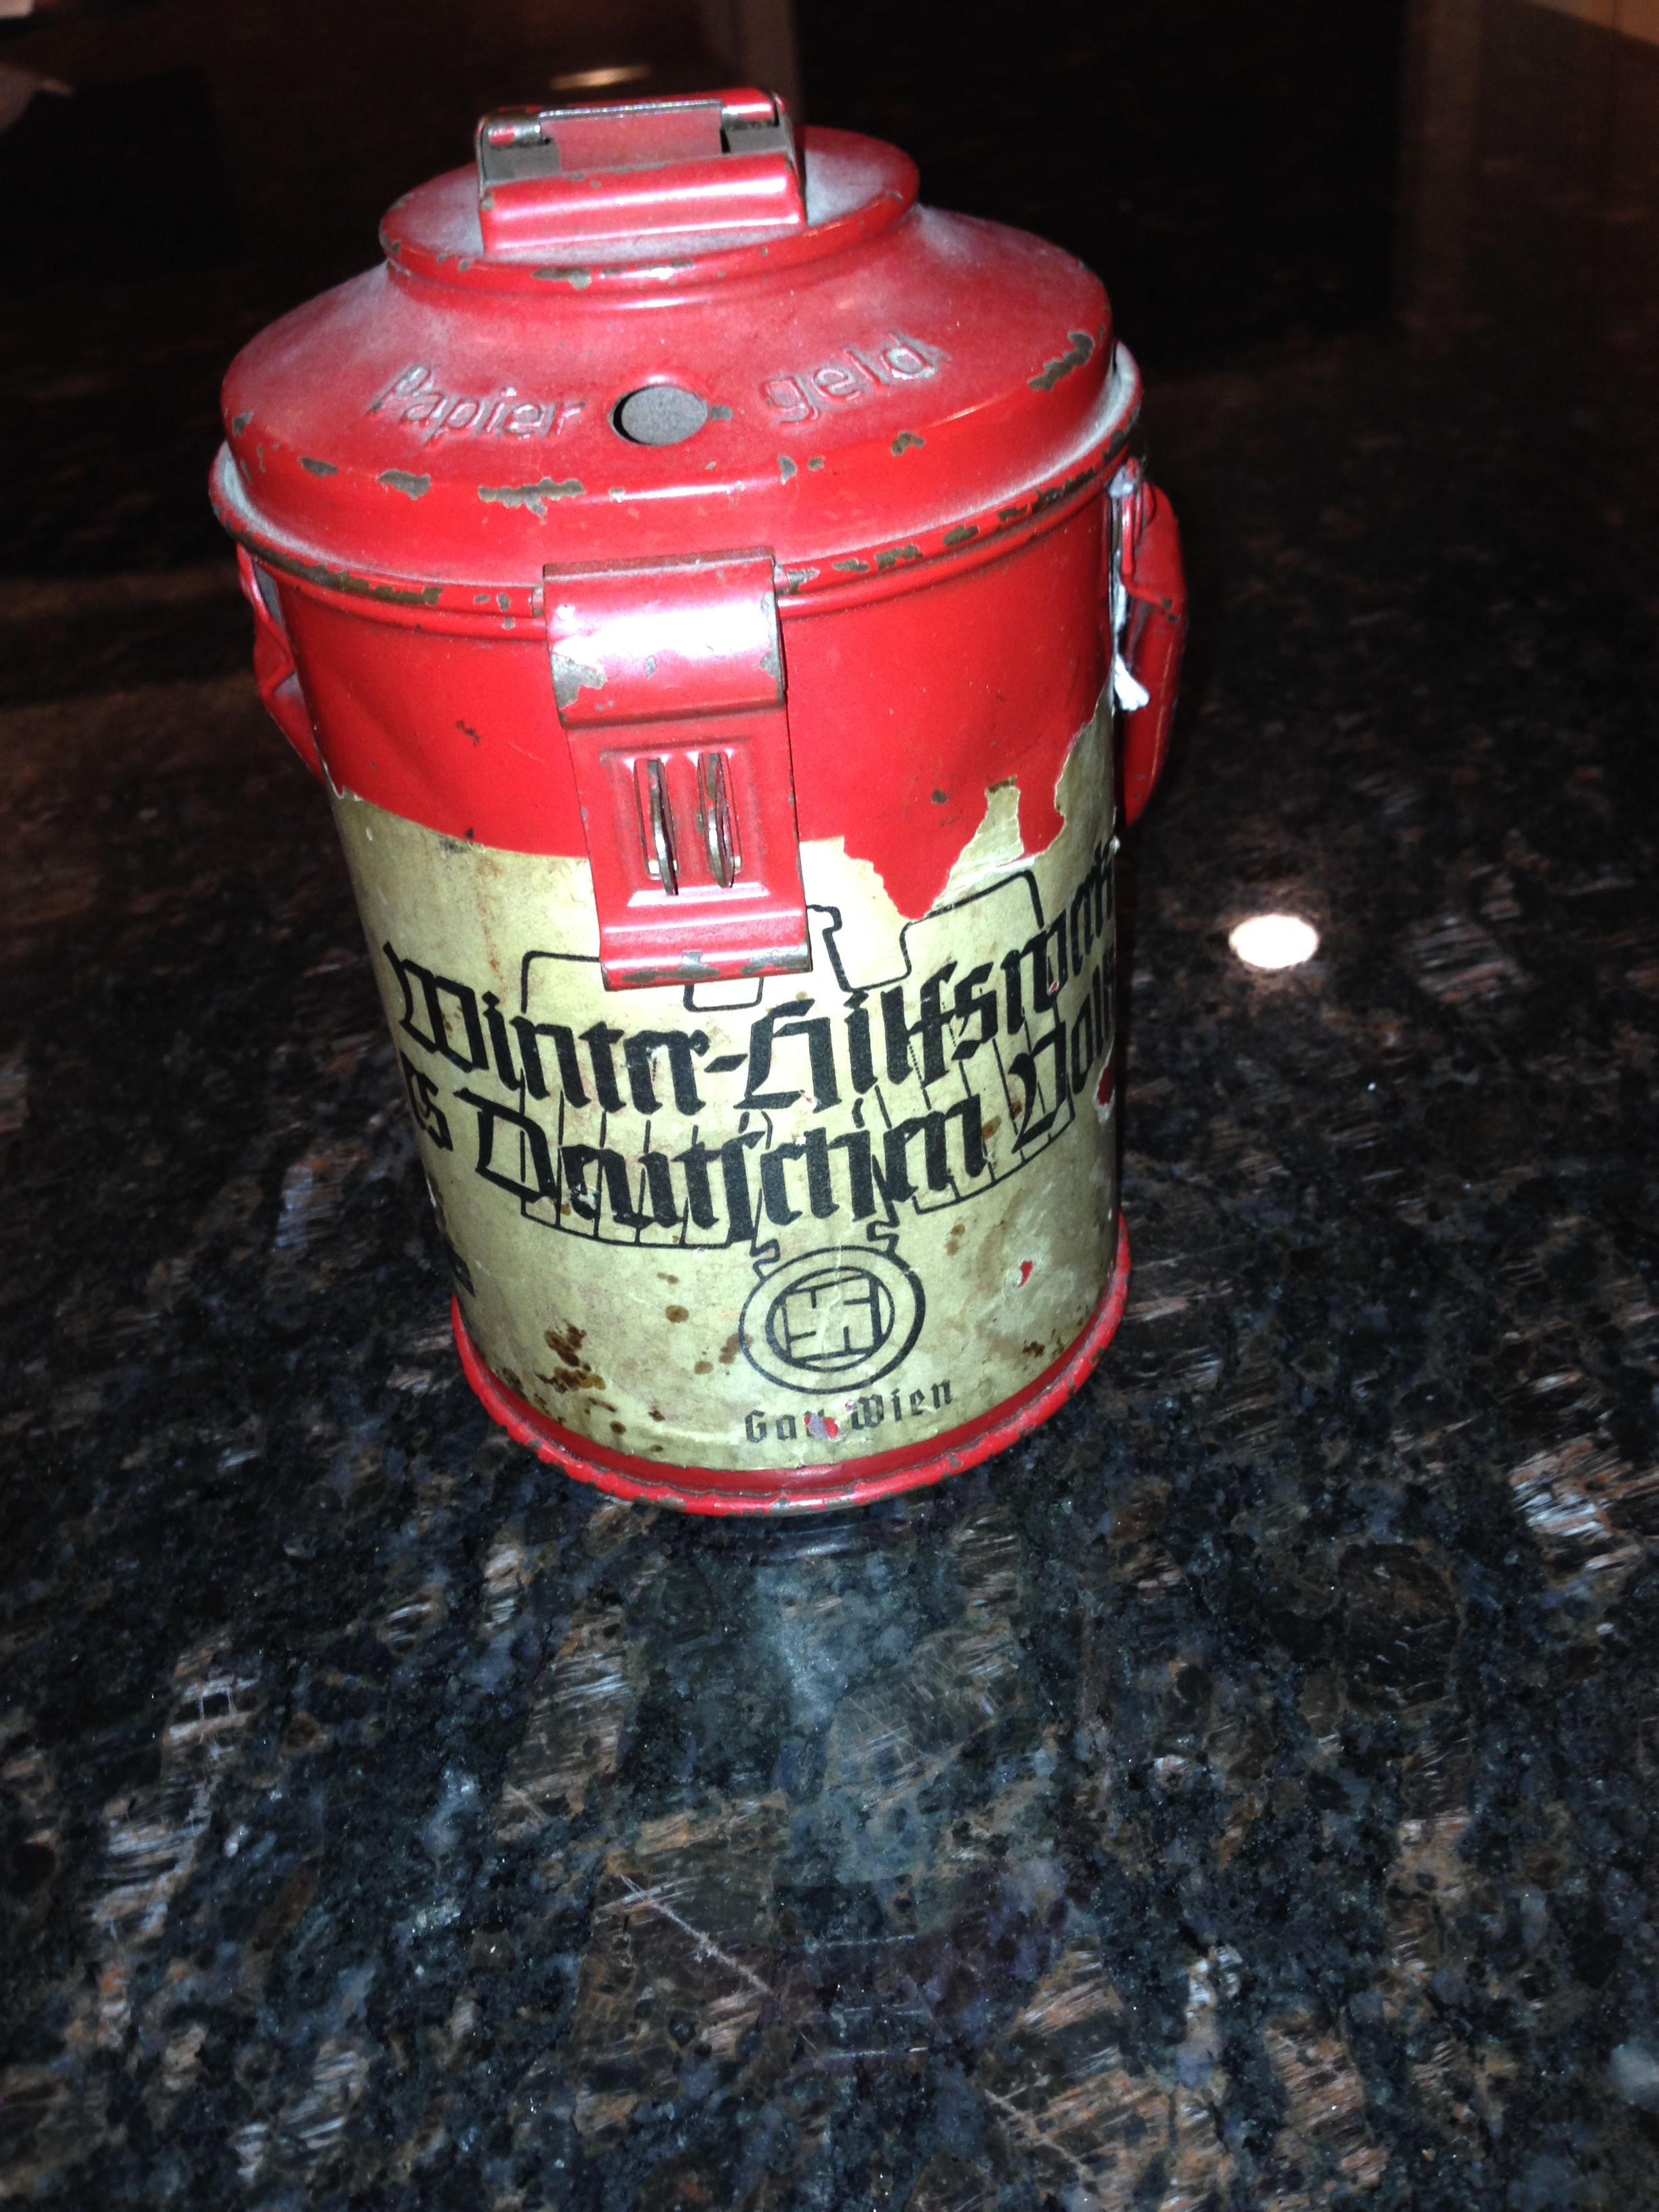 Collection tin used for Winterhilfswerk.